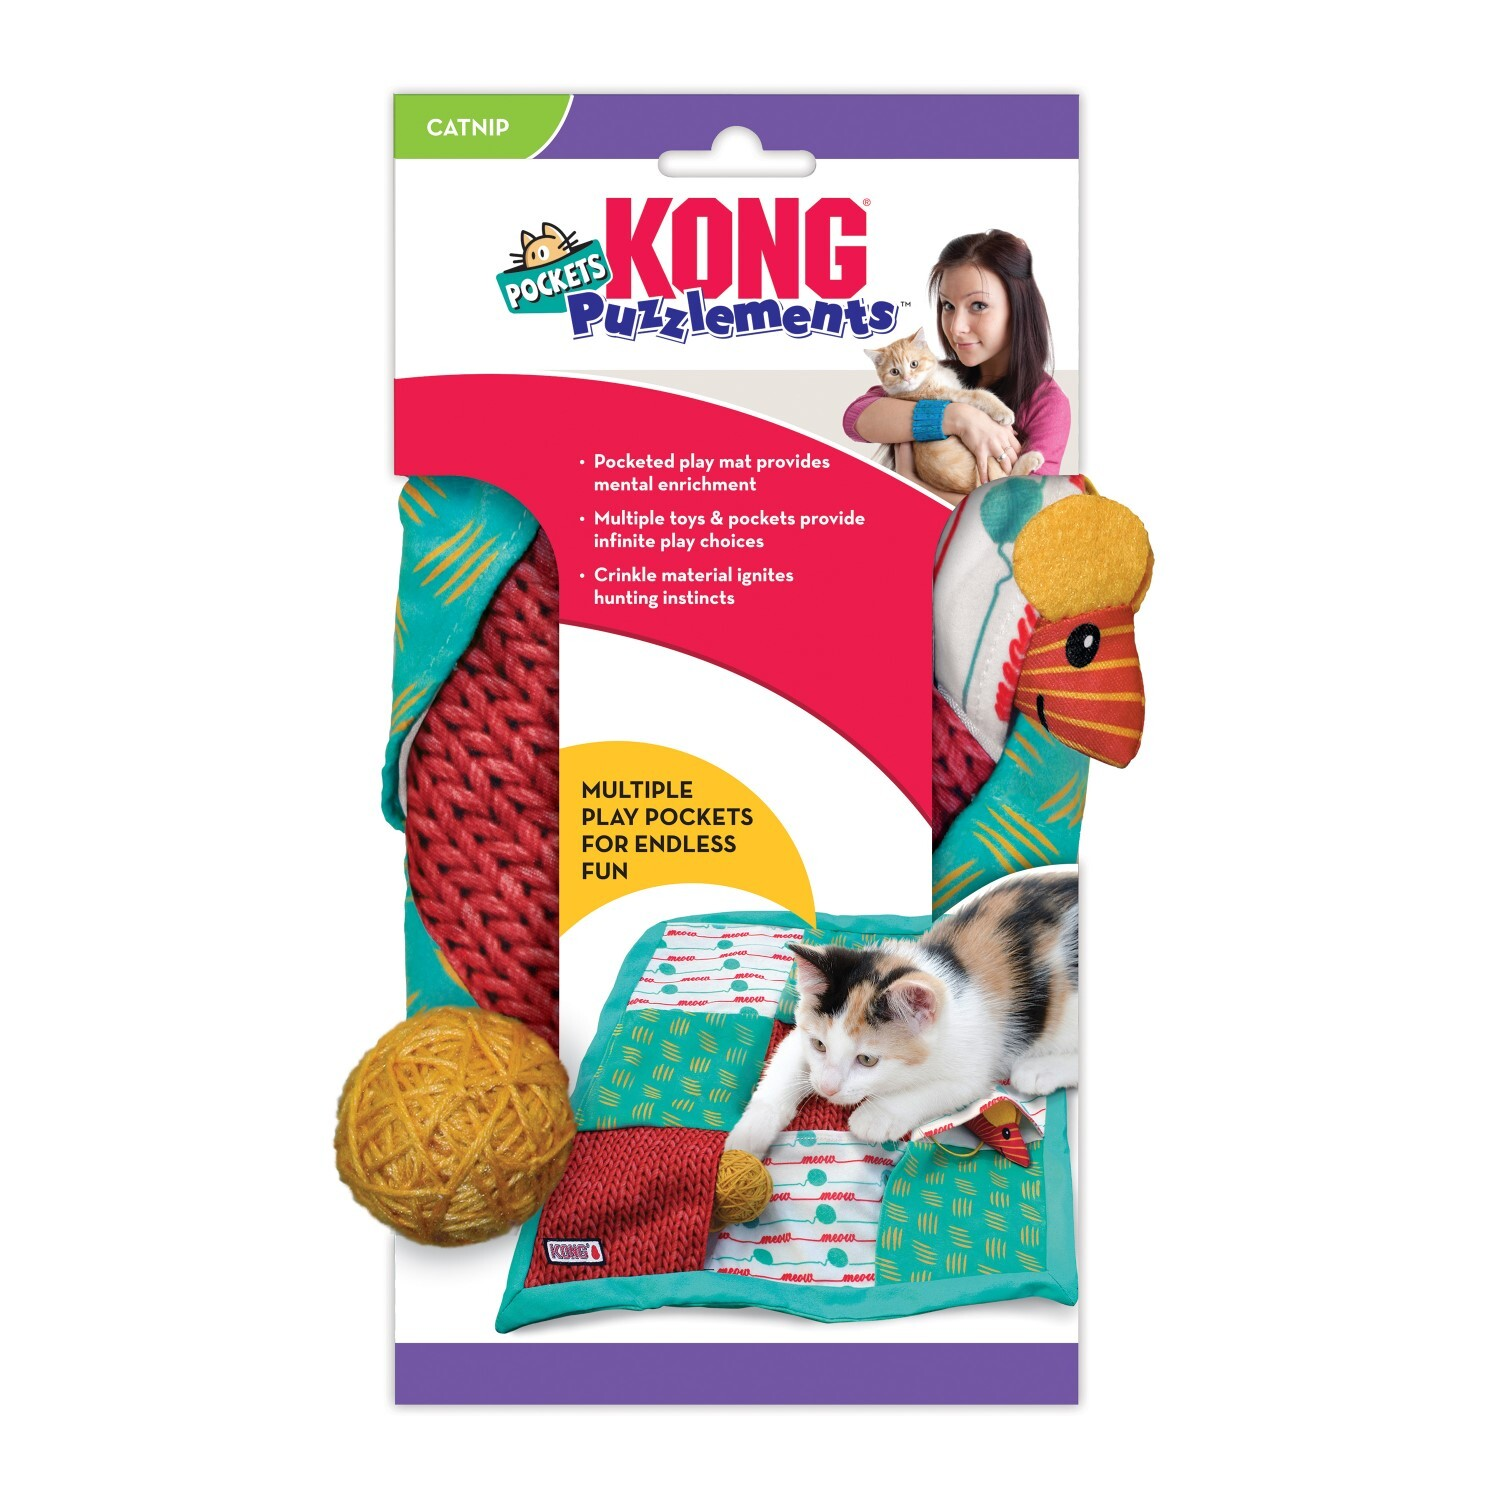 KONG Puzzlements Pockets Interactive Treat Hiding Cat Play Mat image 1